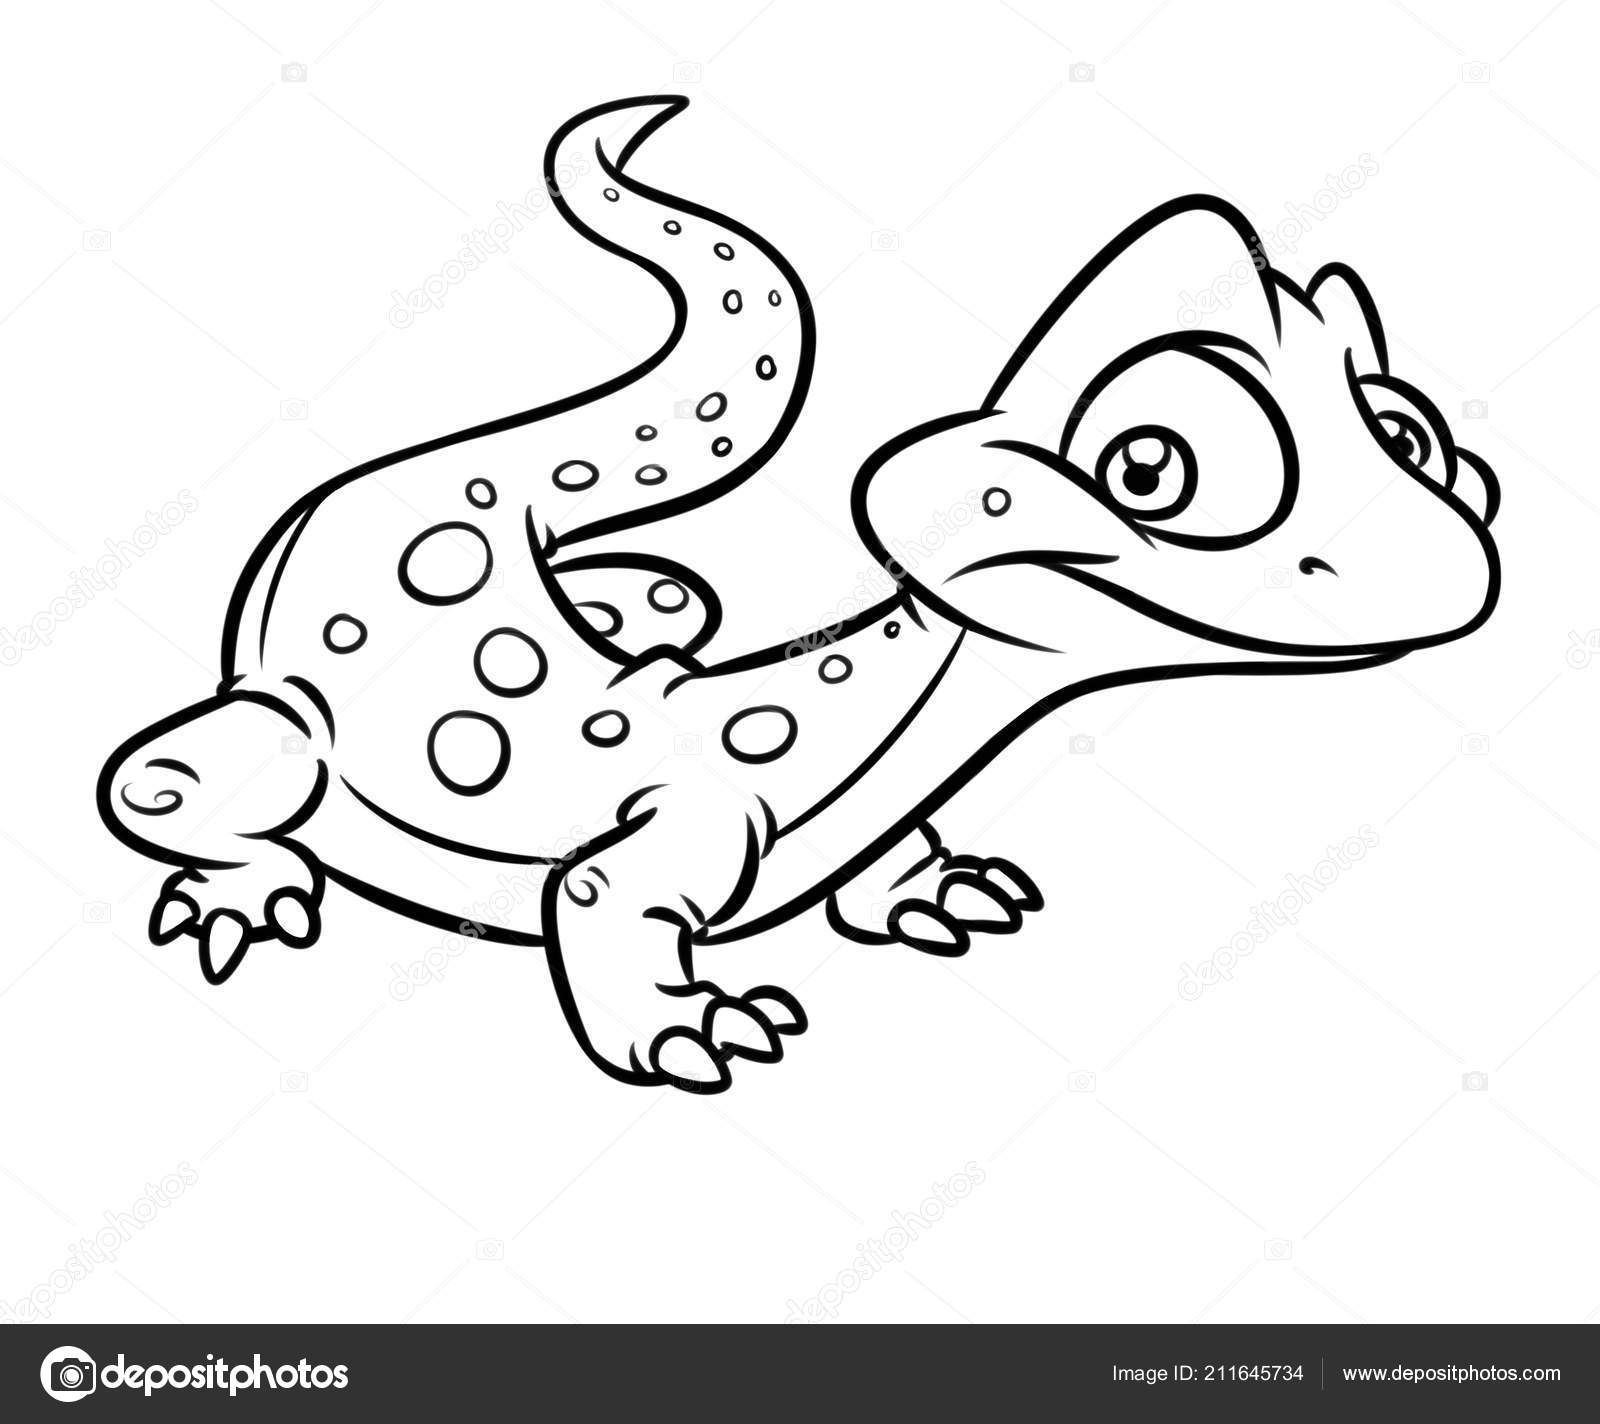 lizard picture to color lizard coloring page digital file download adult color to picture lizard